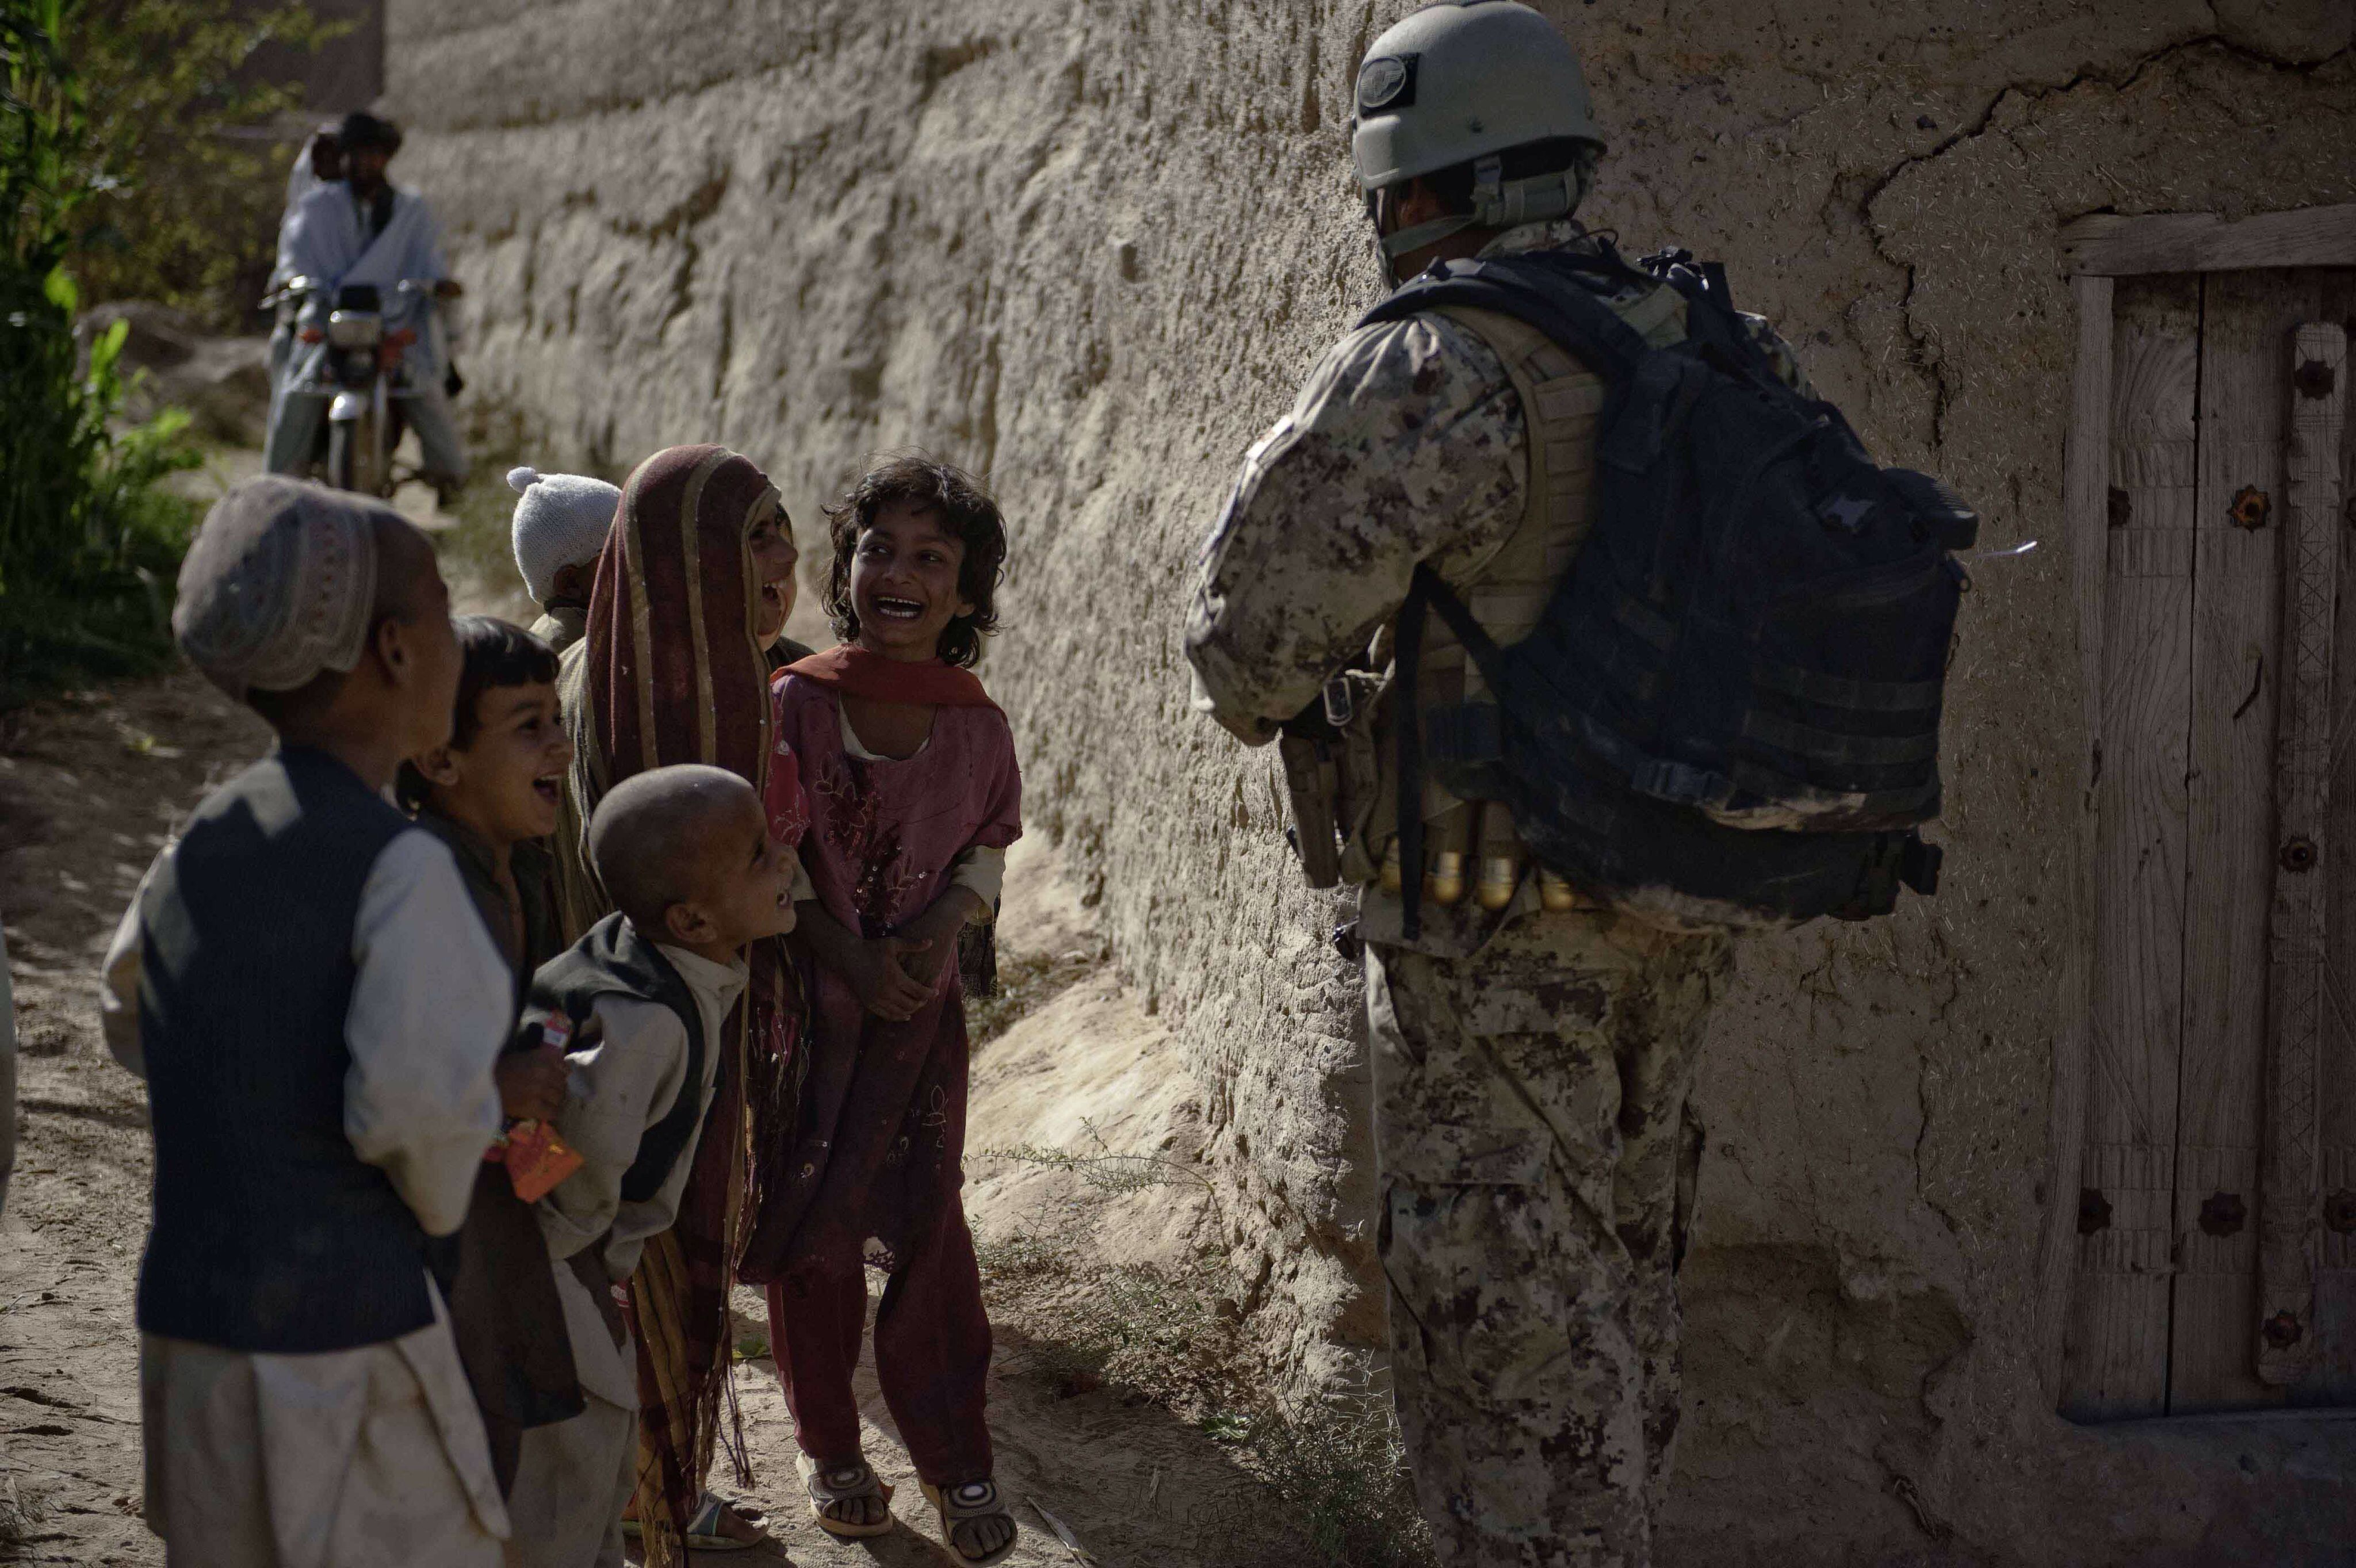 A U.S. Army Special Forces soldier entertains children in the Zhari district of Kandahar province while on a joint patrol, Oct. 19, 2010. (U.S. Army photo by Sgt. Ben Watson, Special Operations Task Force – South)